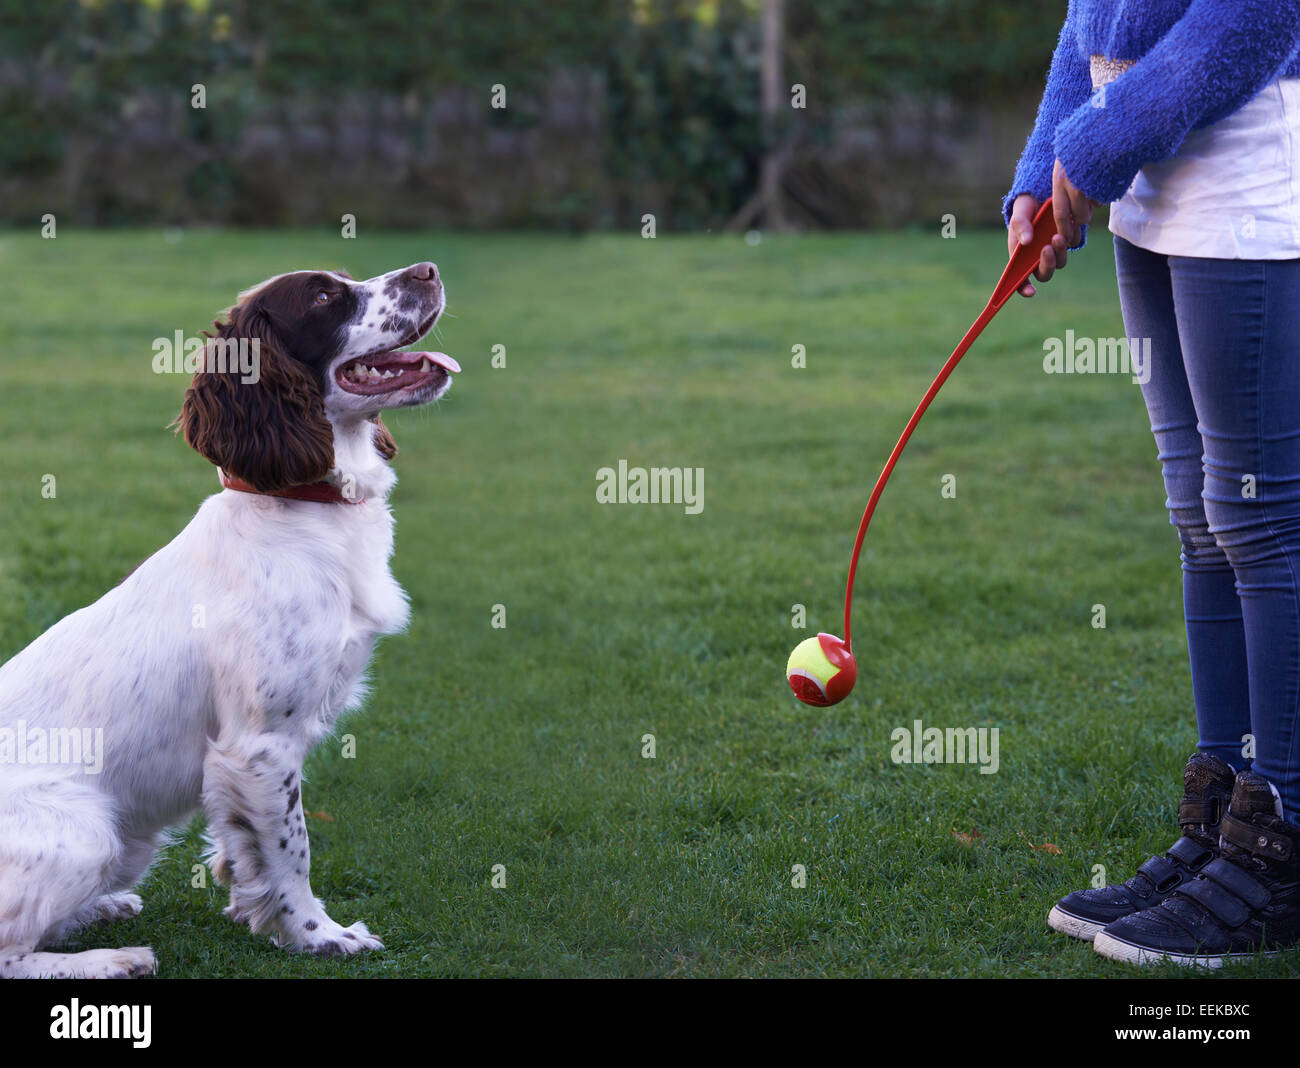 Girl Throwing Ball For Pet Spaniel Dog In Garden - Stock Image